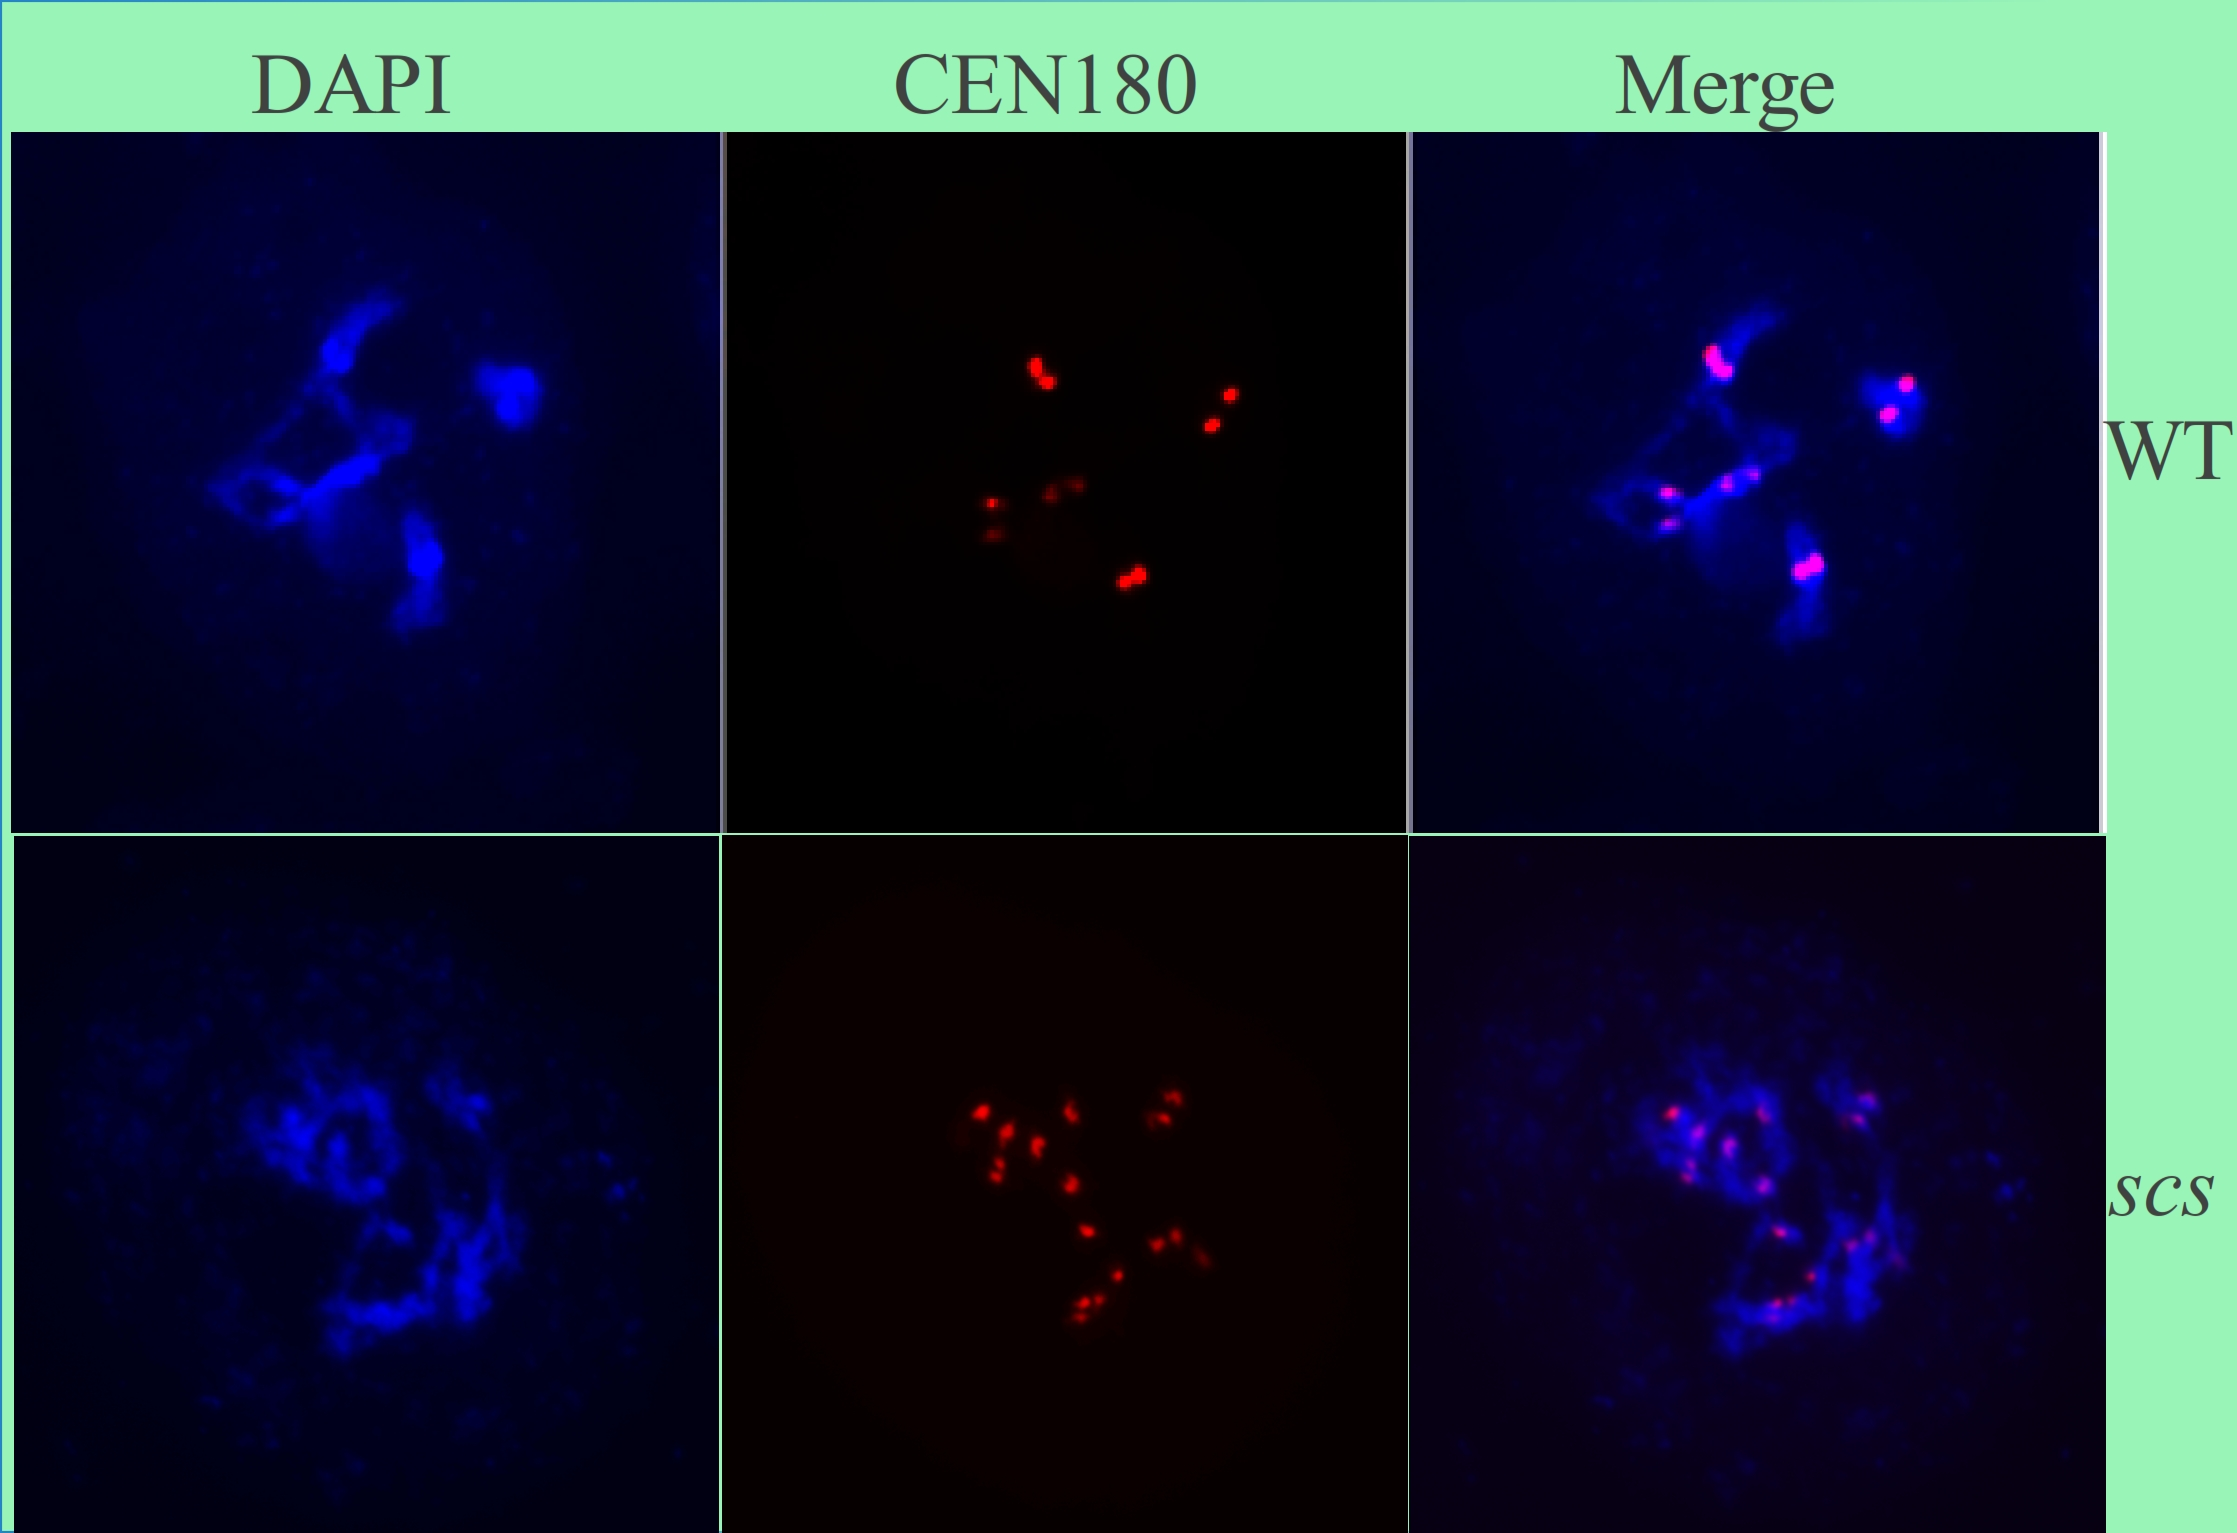 DAPI and FISH analyses of meiotic chromosome behavior in Arabidopsis male meiocytes. In wild-type cells, meiotic recombination is normally formed between homologous chromosomes. However, in the scs mutant cells, sister centromeres are separated apart, showing the defects of chromosome movements.